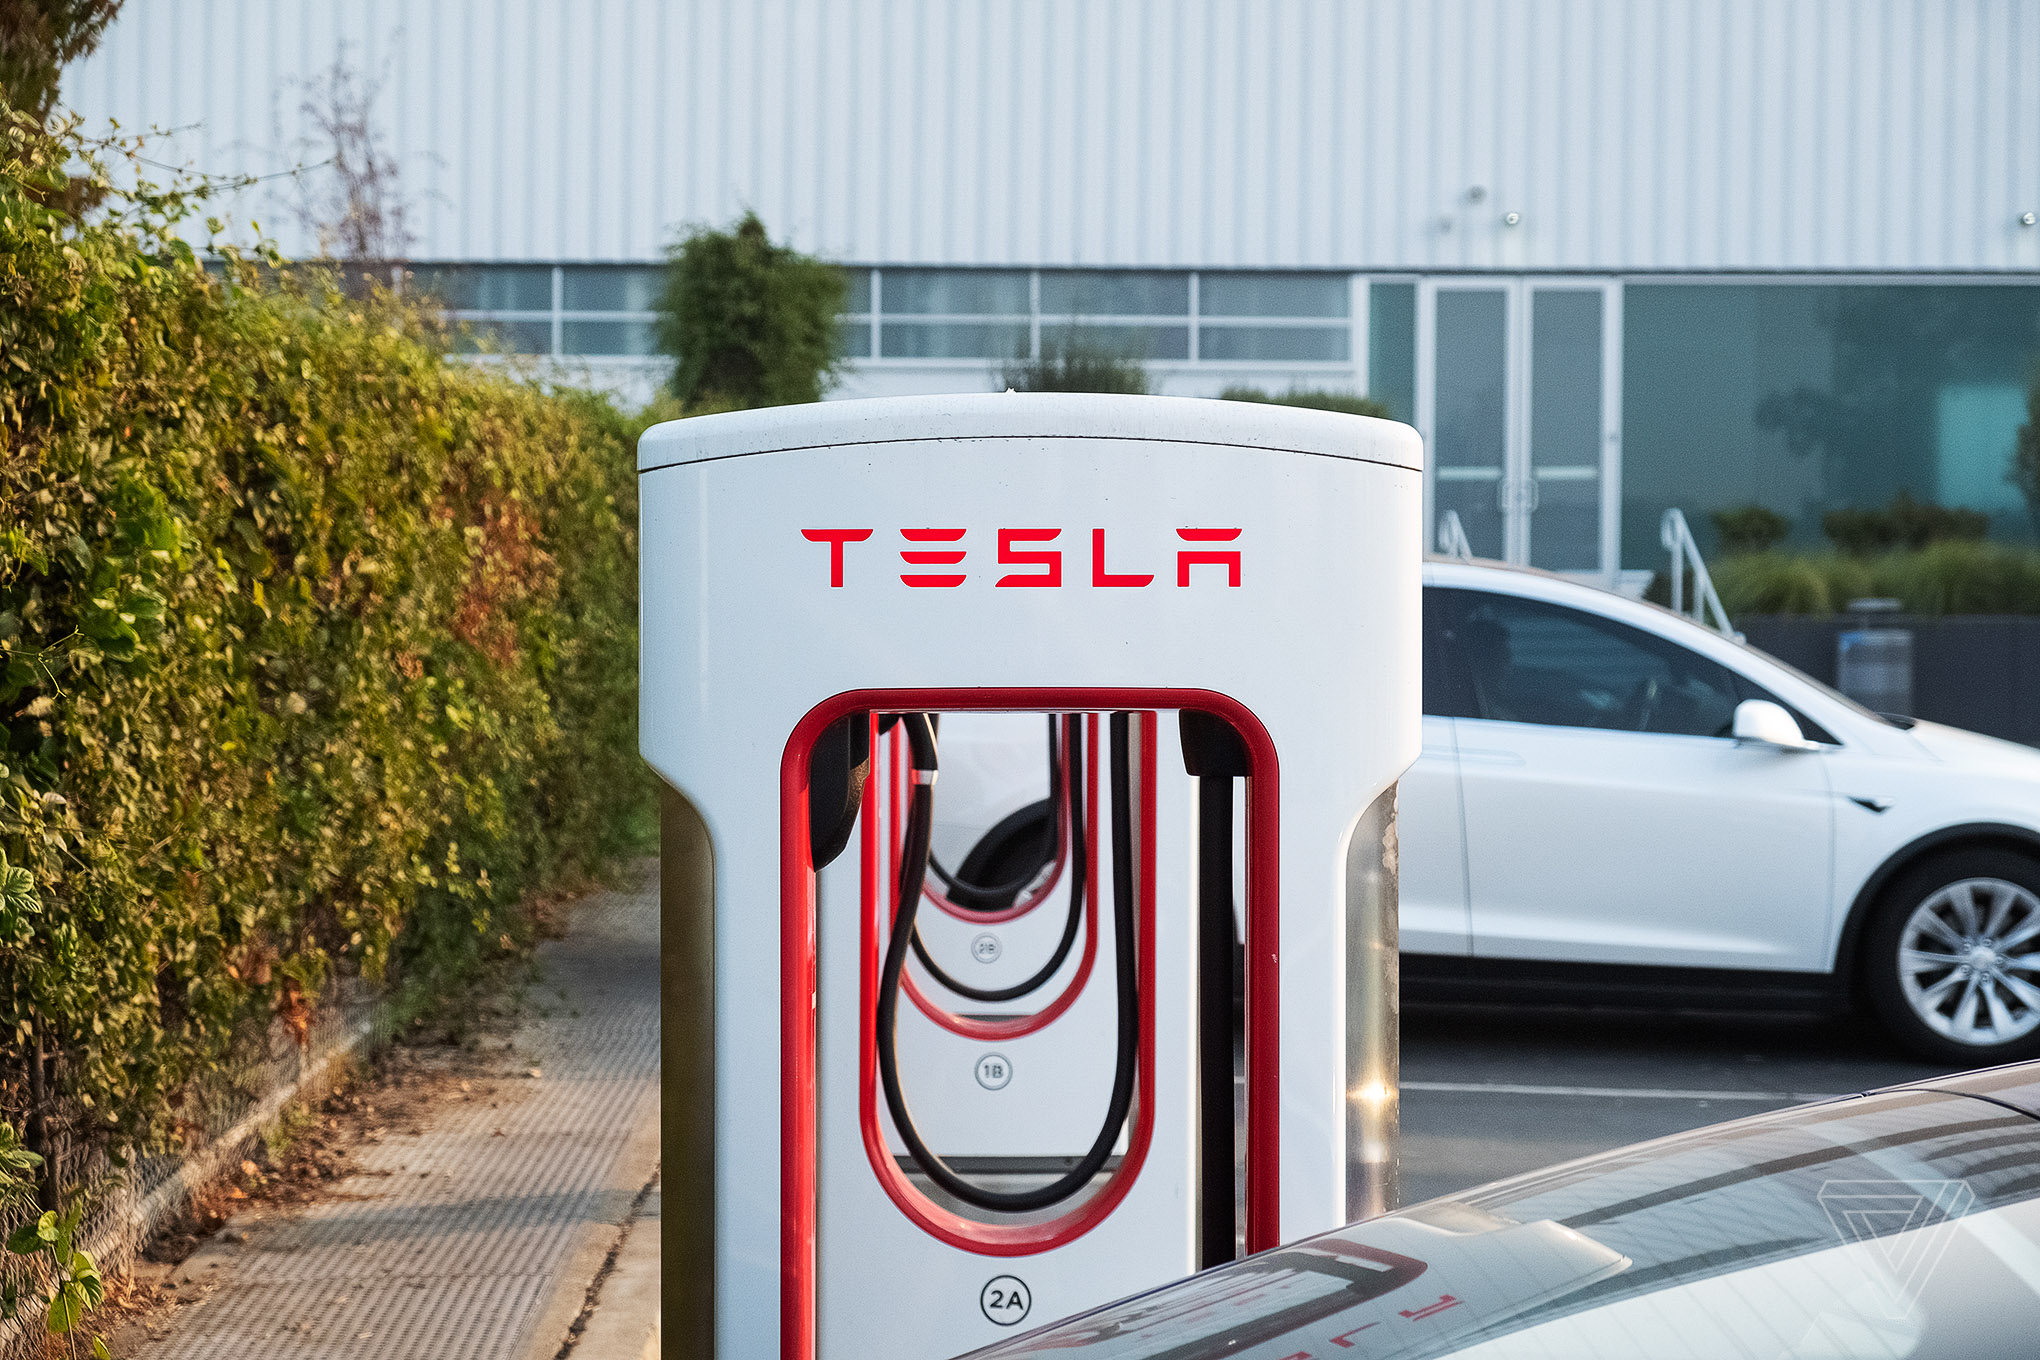 Tesla launches faster third generation Supercharger - The Verge